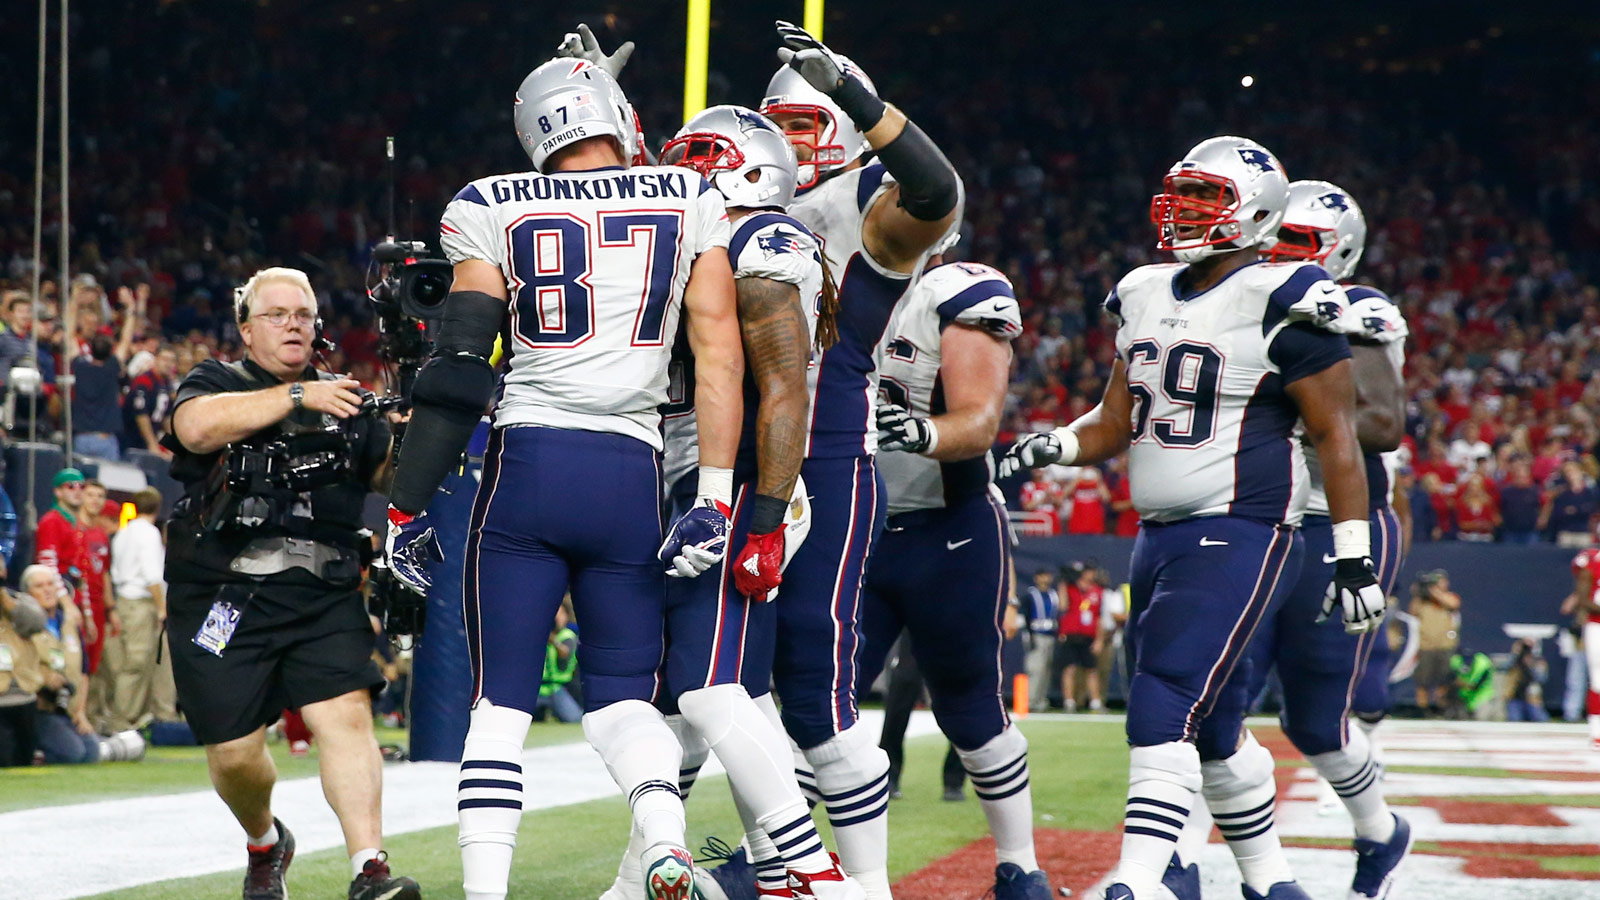 Pats end skid, clinch playoff berth with dominant win in Houston